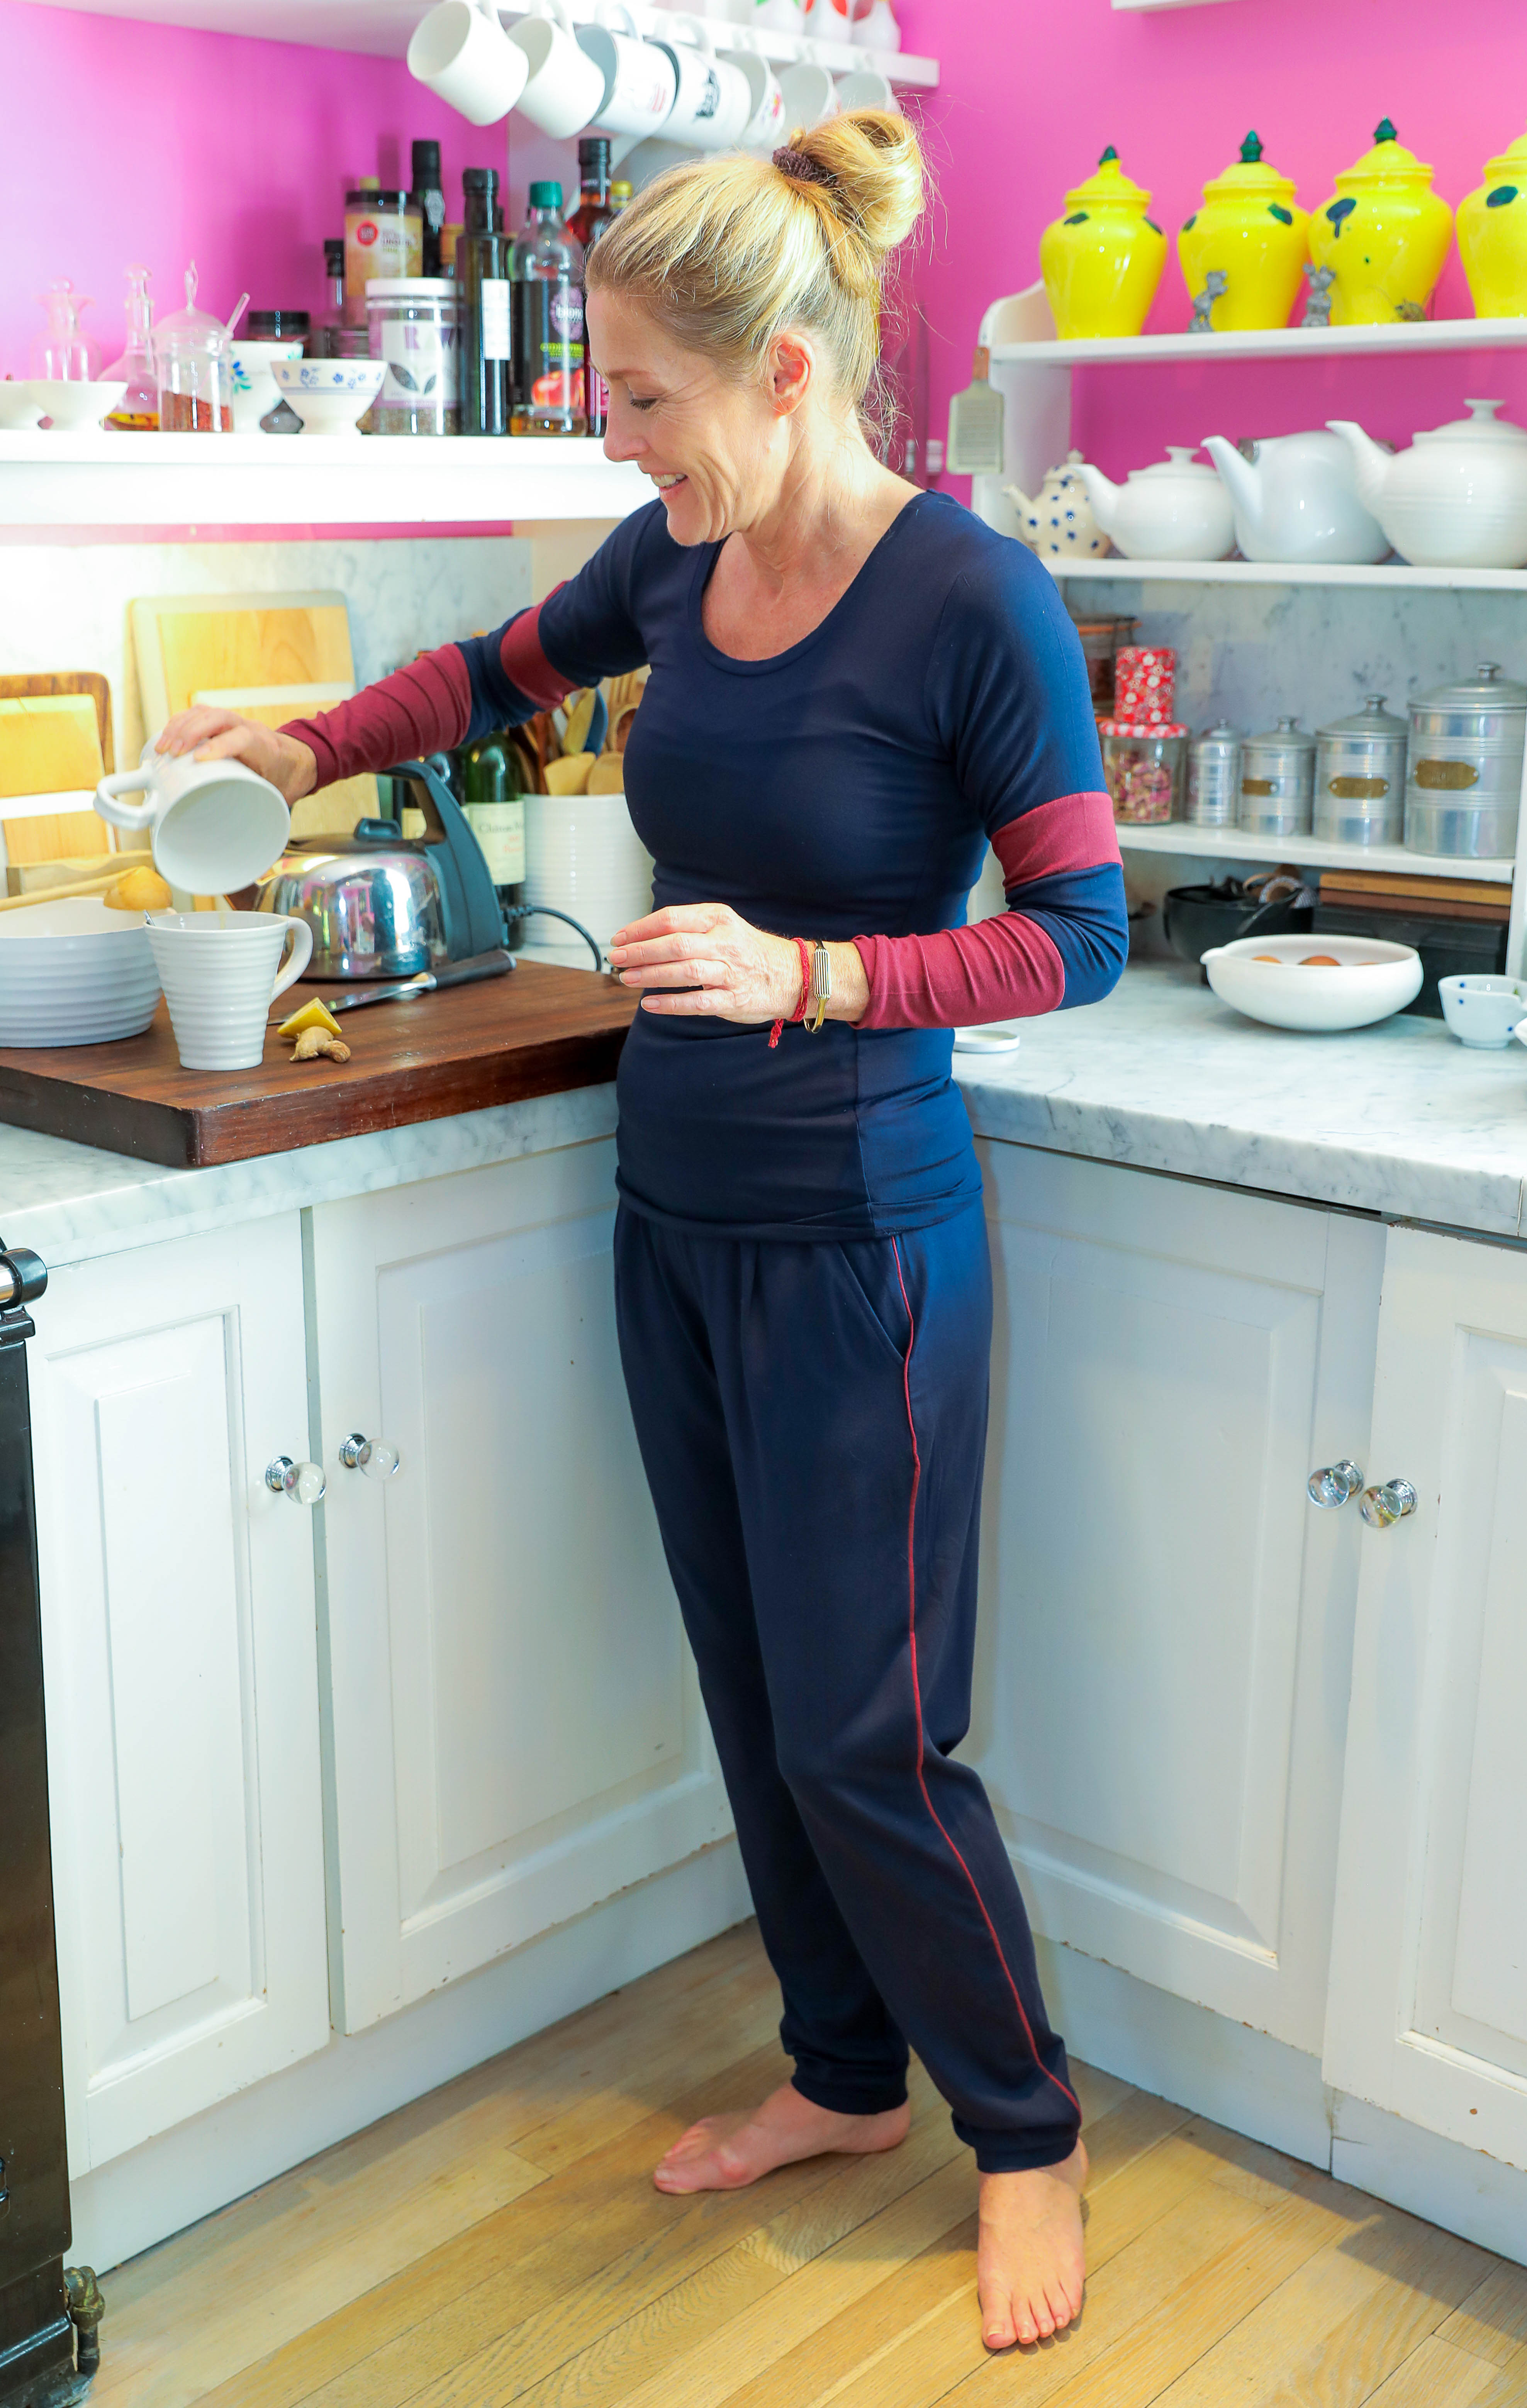 Sophie Conran wears Asquith eco-friendly activewear in her pink kitchen.